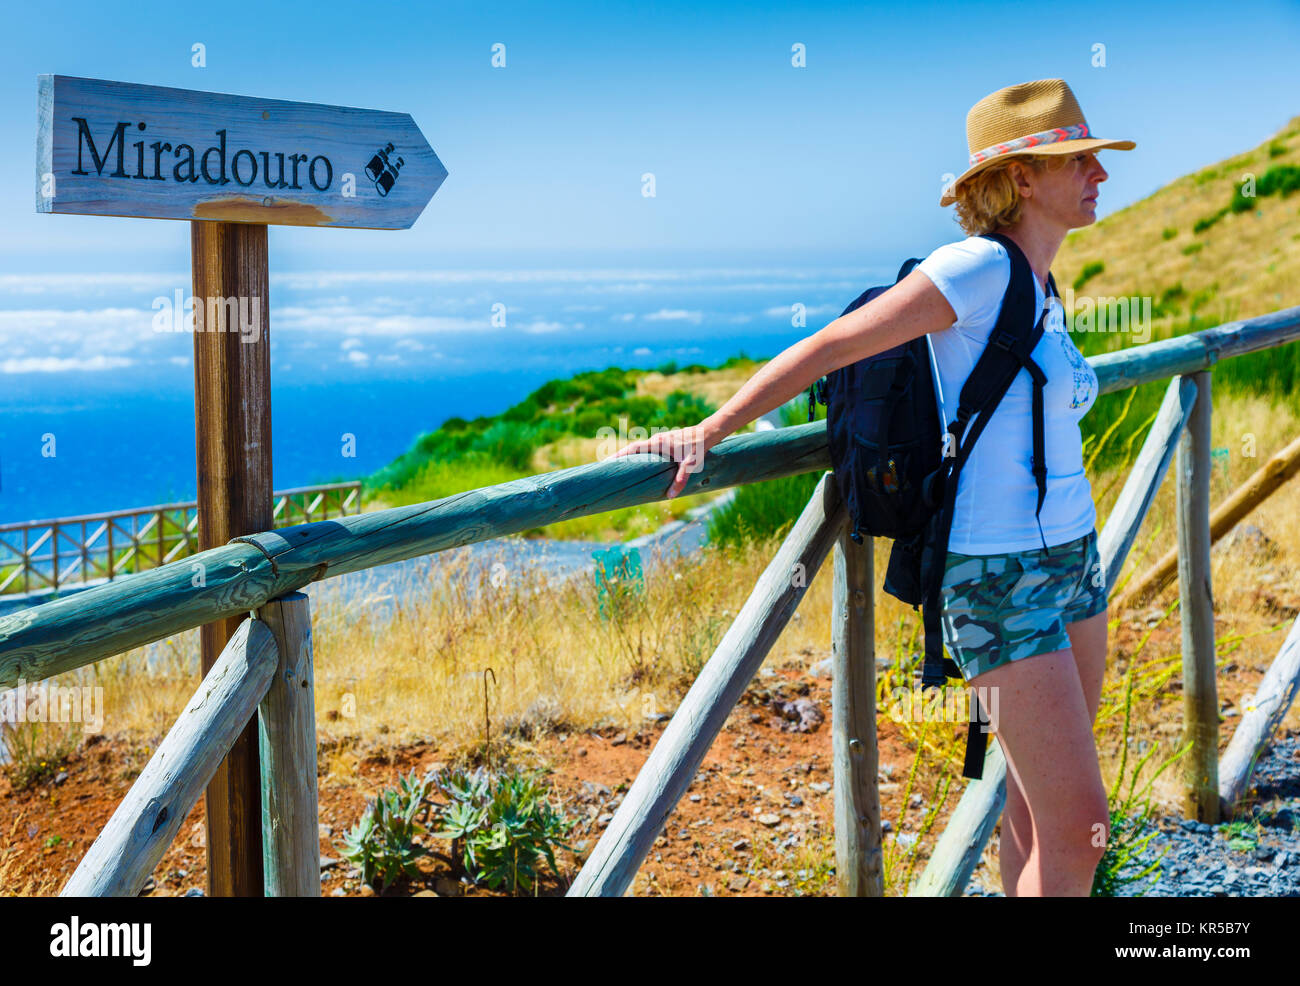 Woman and viewpoint. View from Paredao viewpoint. Madeira, Portugal, Europe. - Stock Image